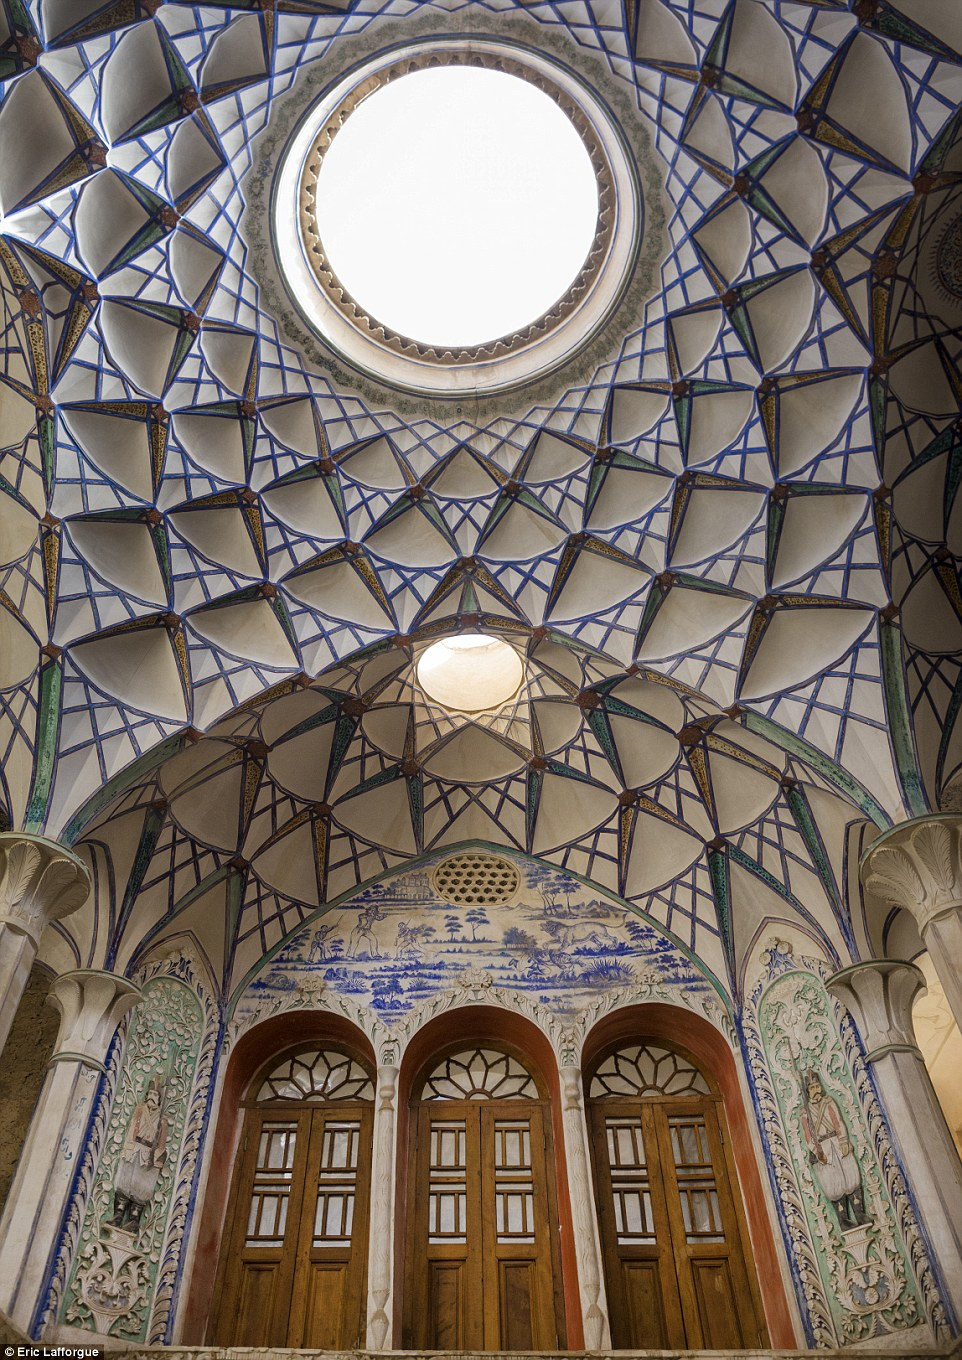 The ceiling in the Sultan Amir Ahmad Bathhouse,a traditional Iranian public bathhouse in Kashan that was constructed in the 16th century